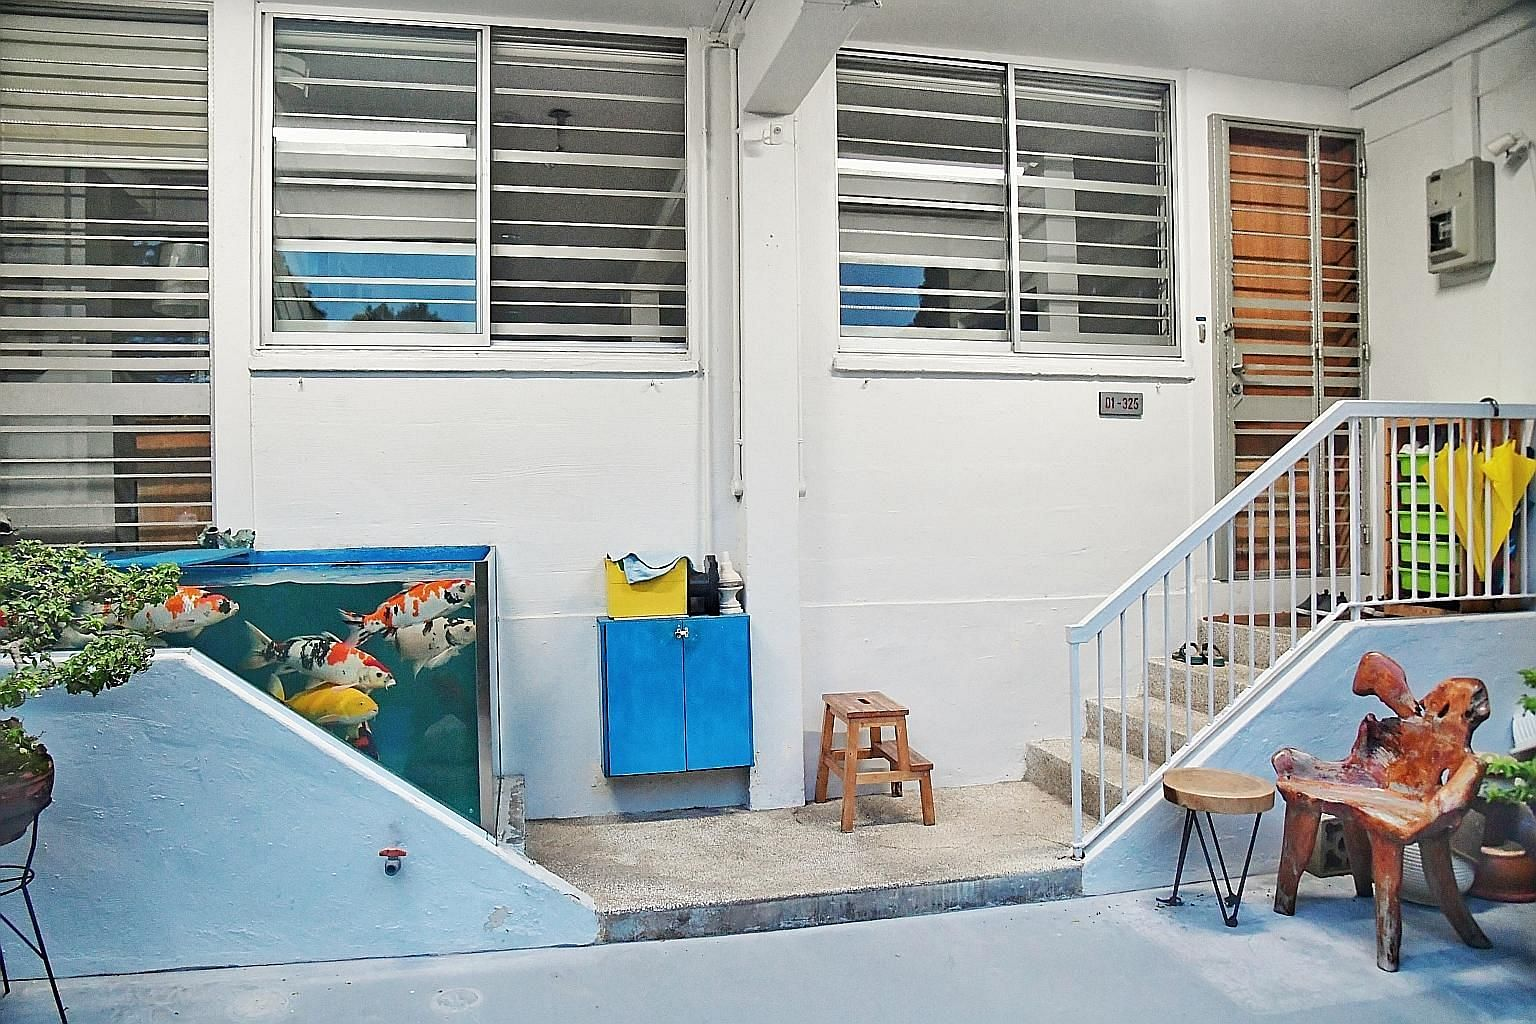 A Tampines resident in April had to dismantle a koi tank he built on the four-step staircase leading to his flat despite receiving support from Tampines Town Council. The HDB had said a permanent structure should not be installed at what was fundamentally